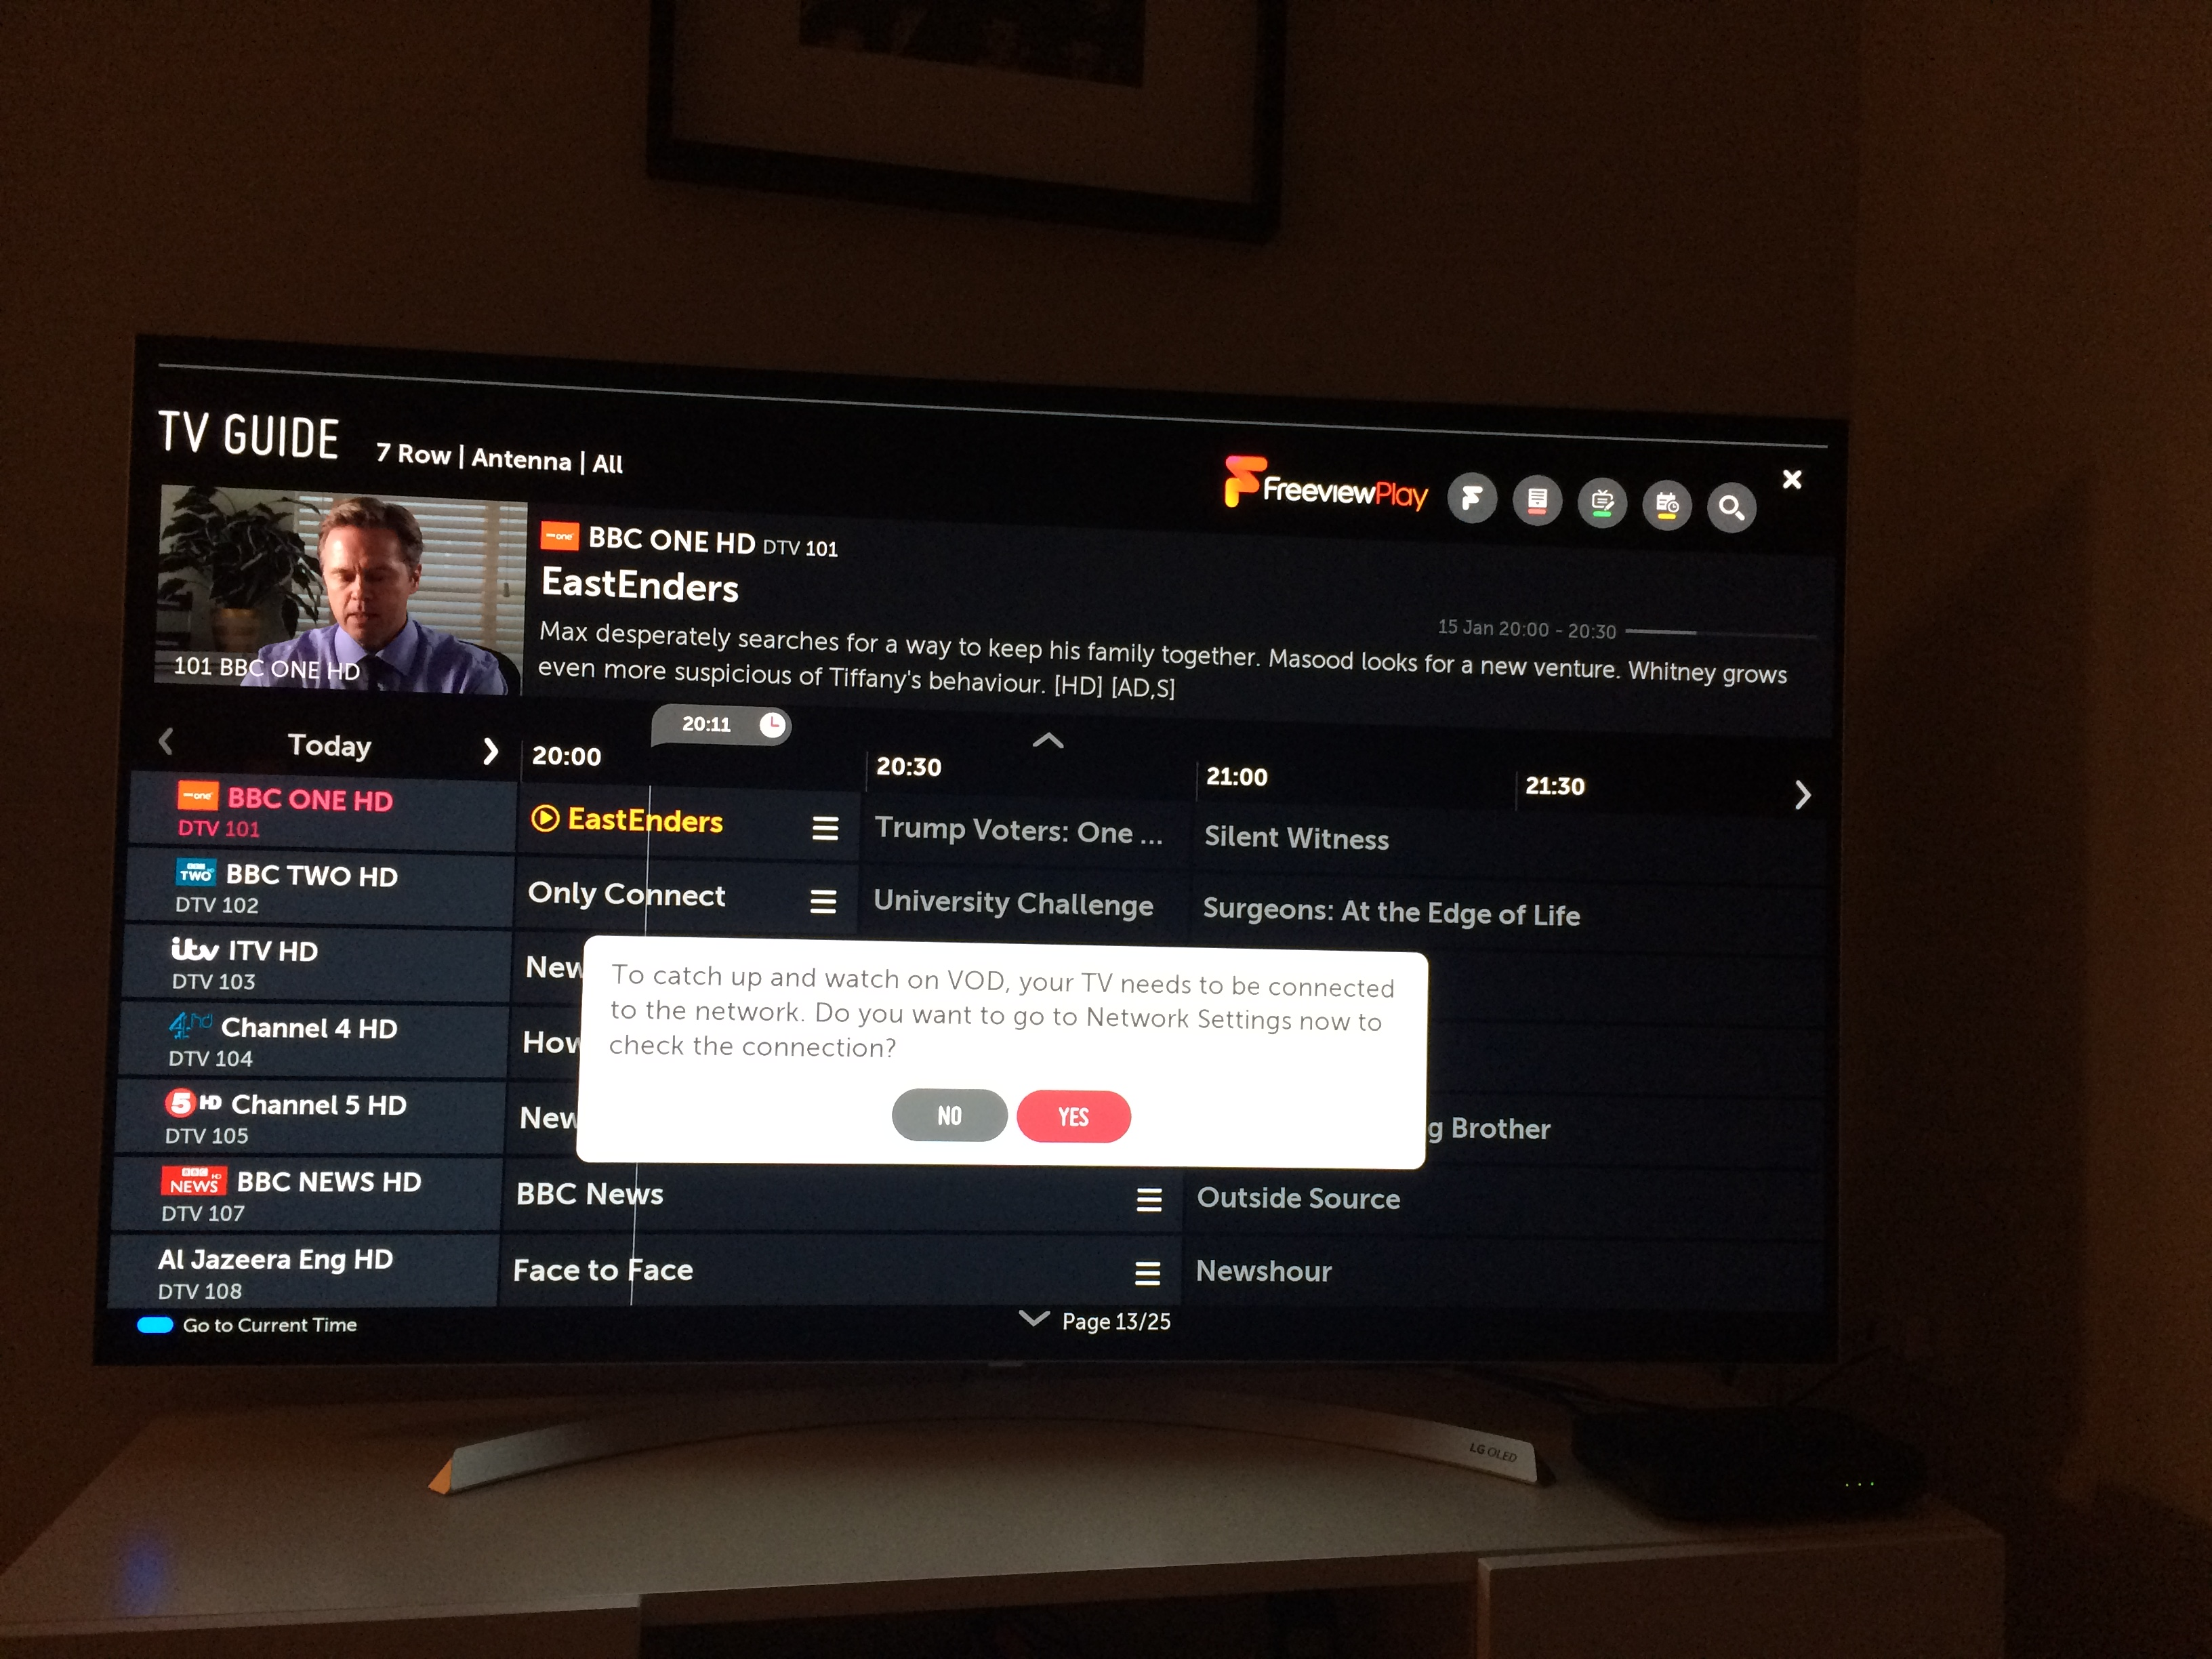 LG B7 OLED TV - Owners and Discussion Thread | Page 84